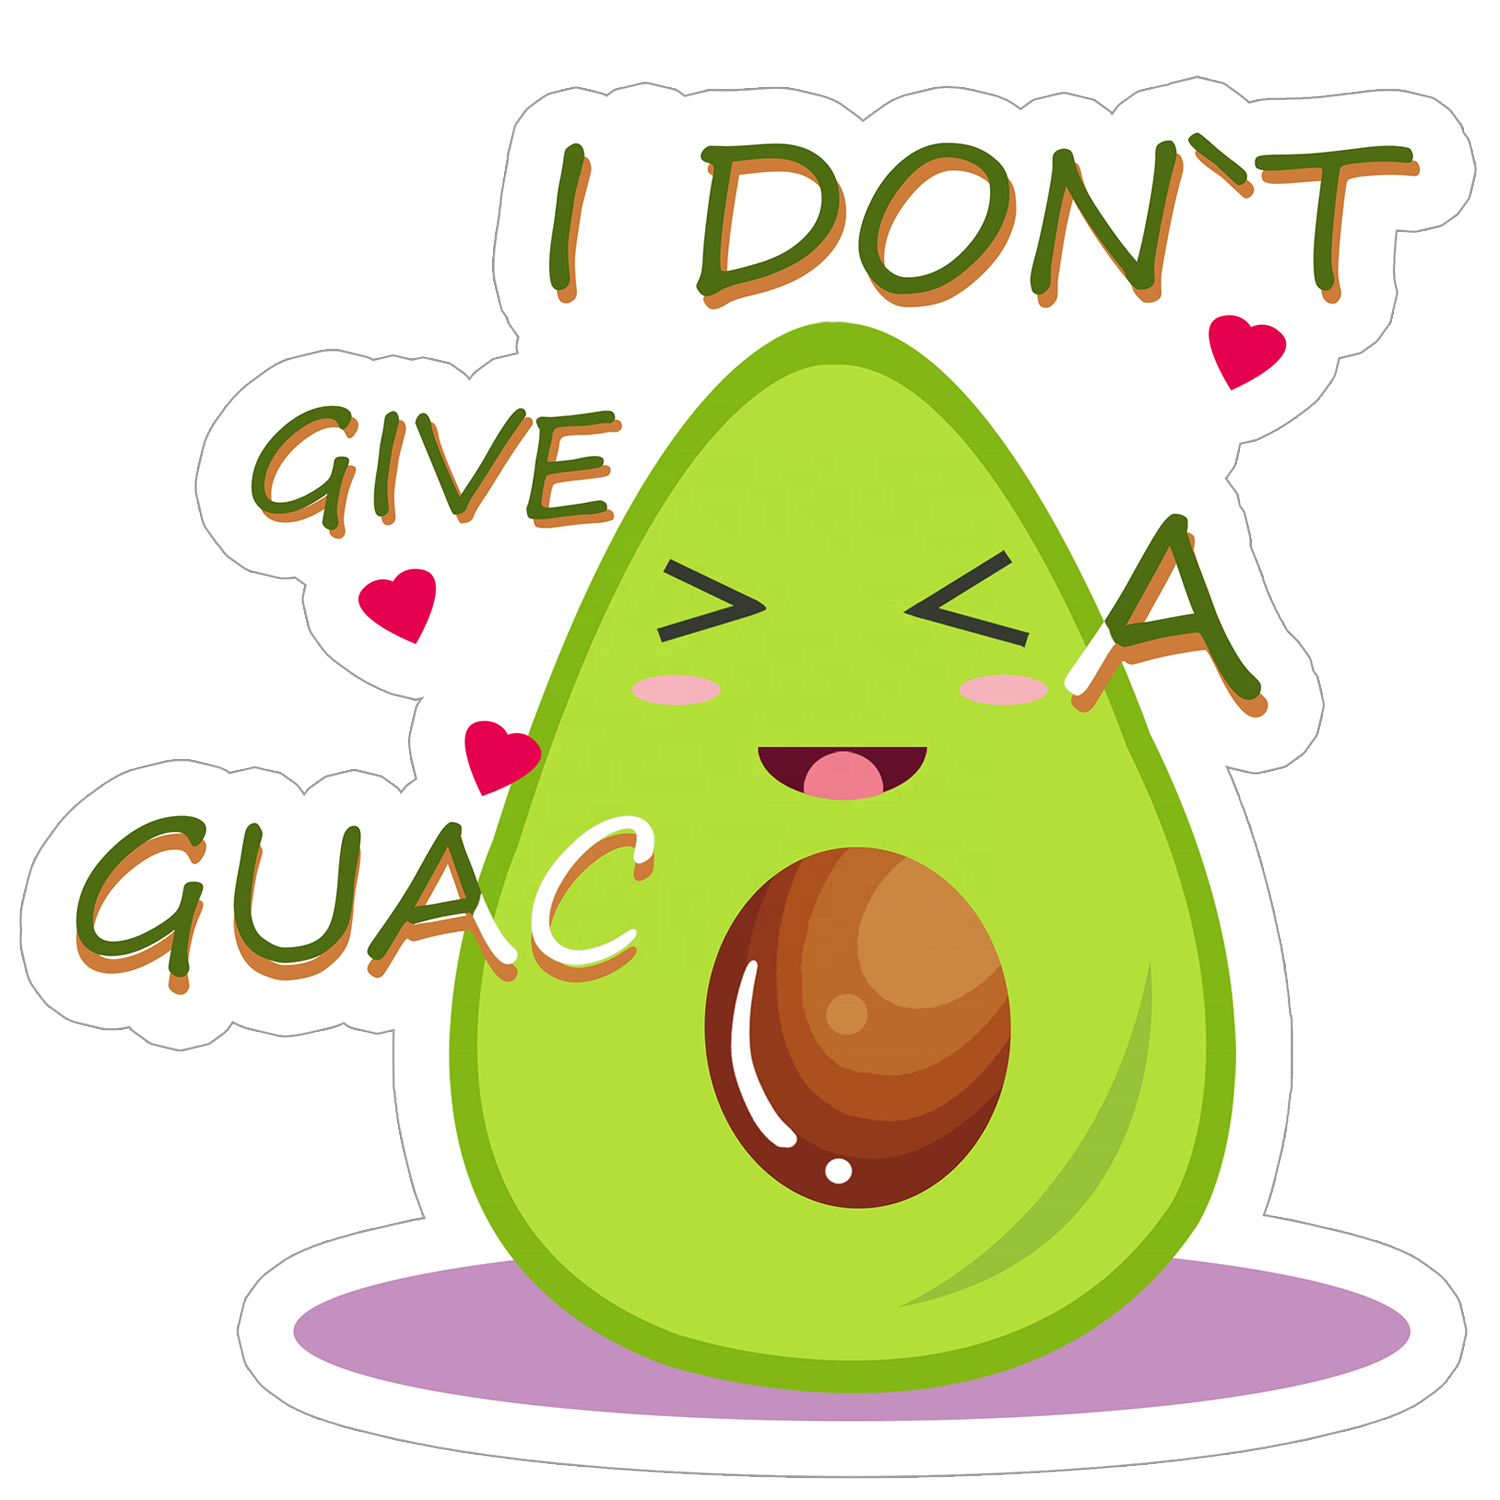 Custom Die Cut Roll Labels by StickerBeats, Custom Stickers I Don't Give Guac, Laptop Skateboard Water Bottle Decorative Sticker